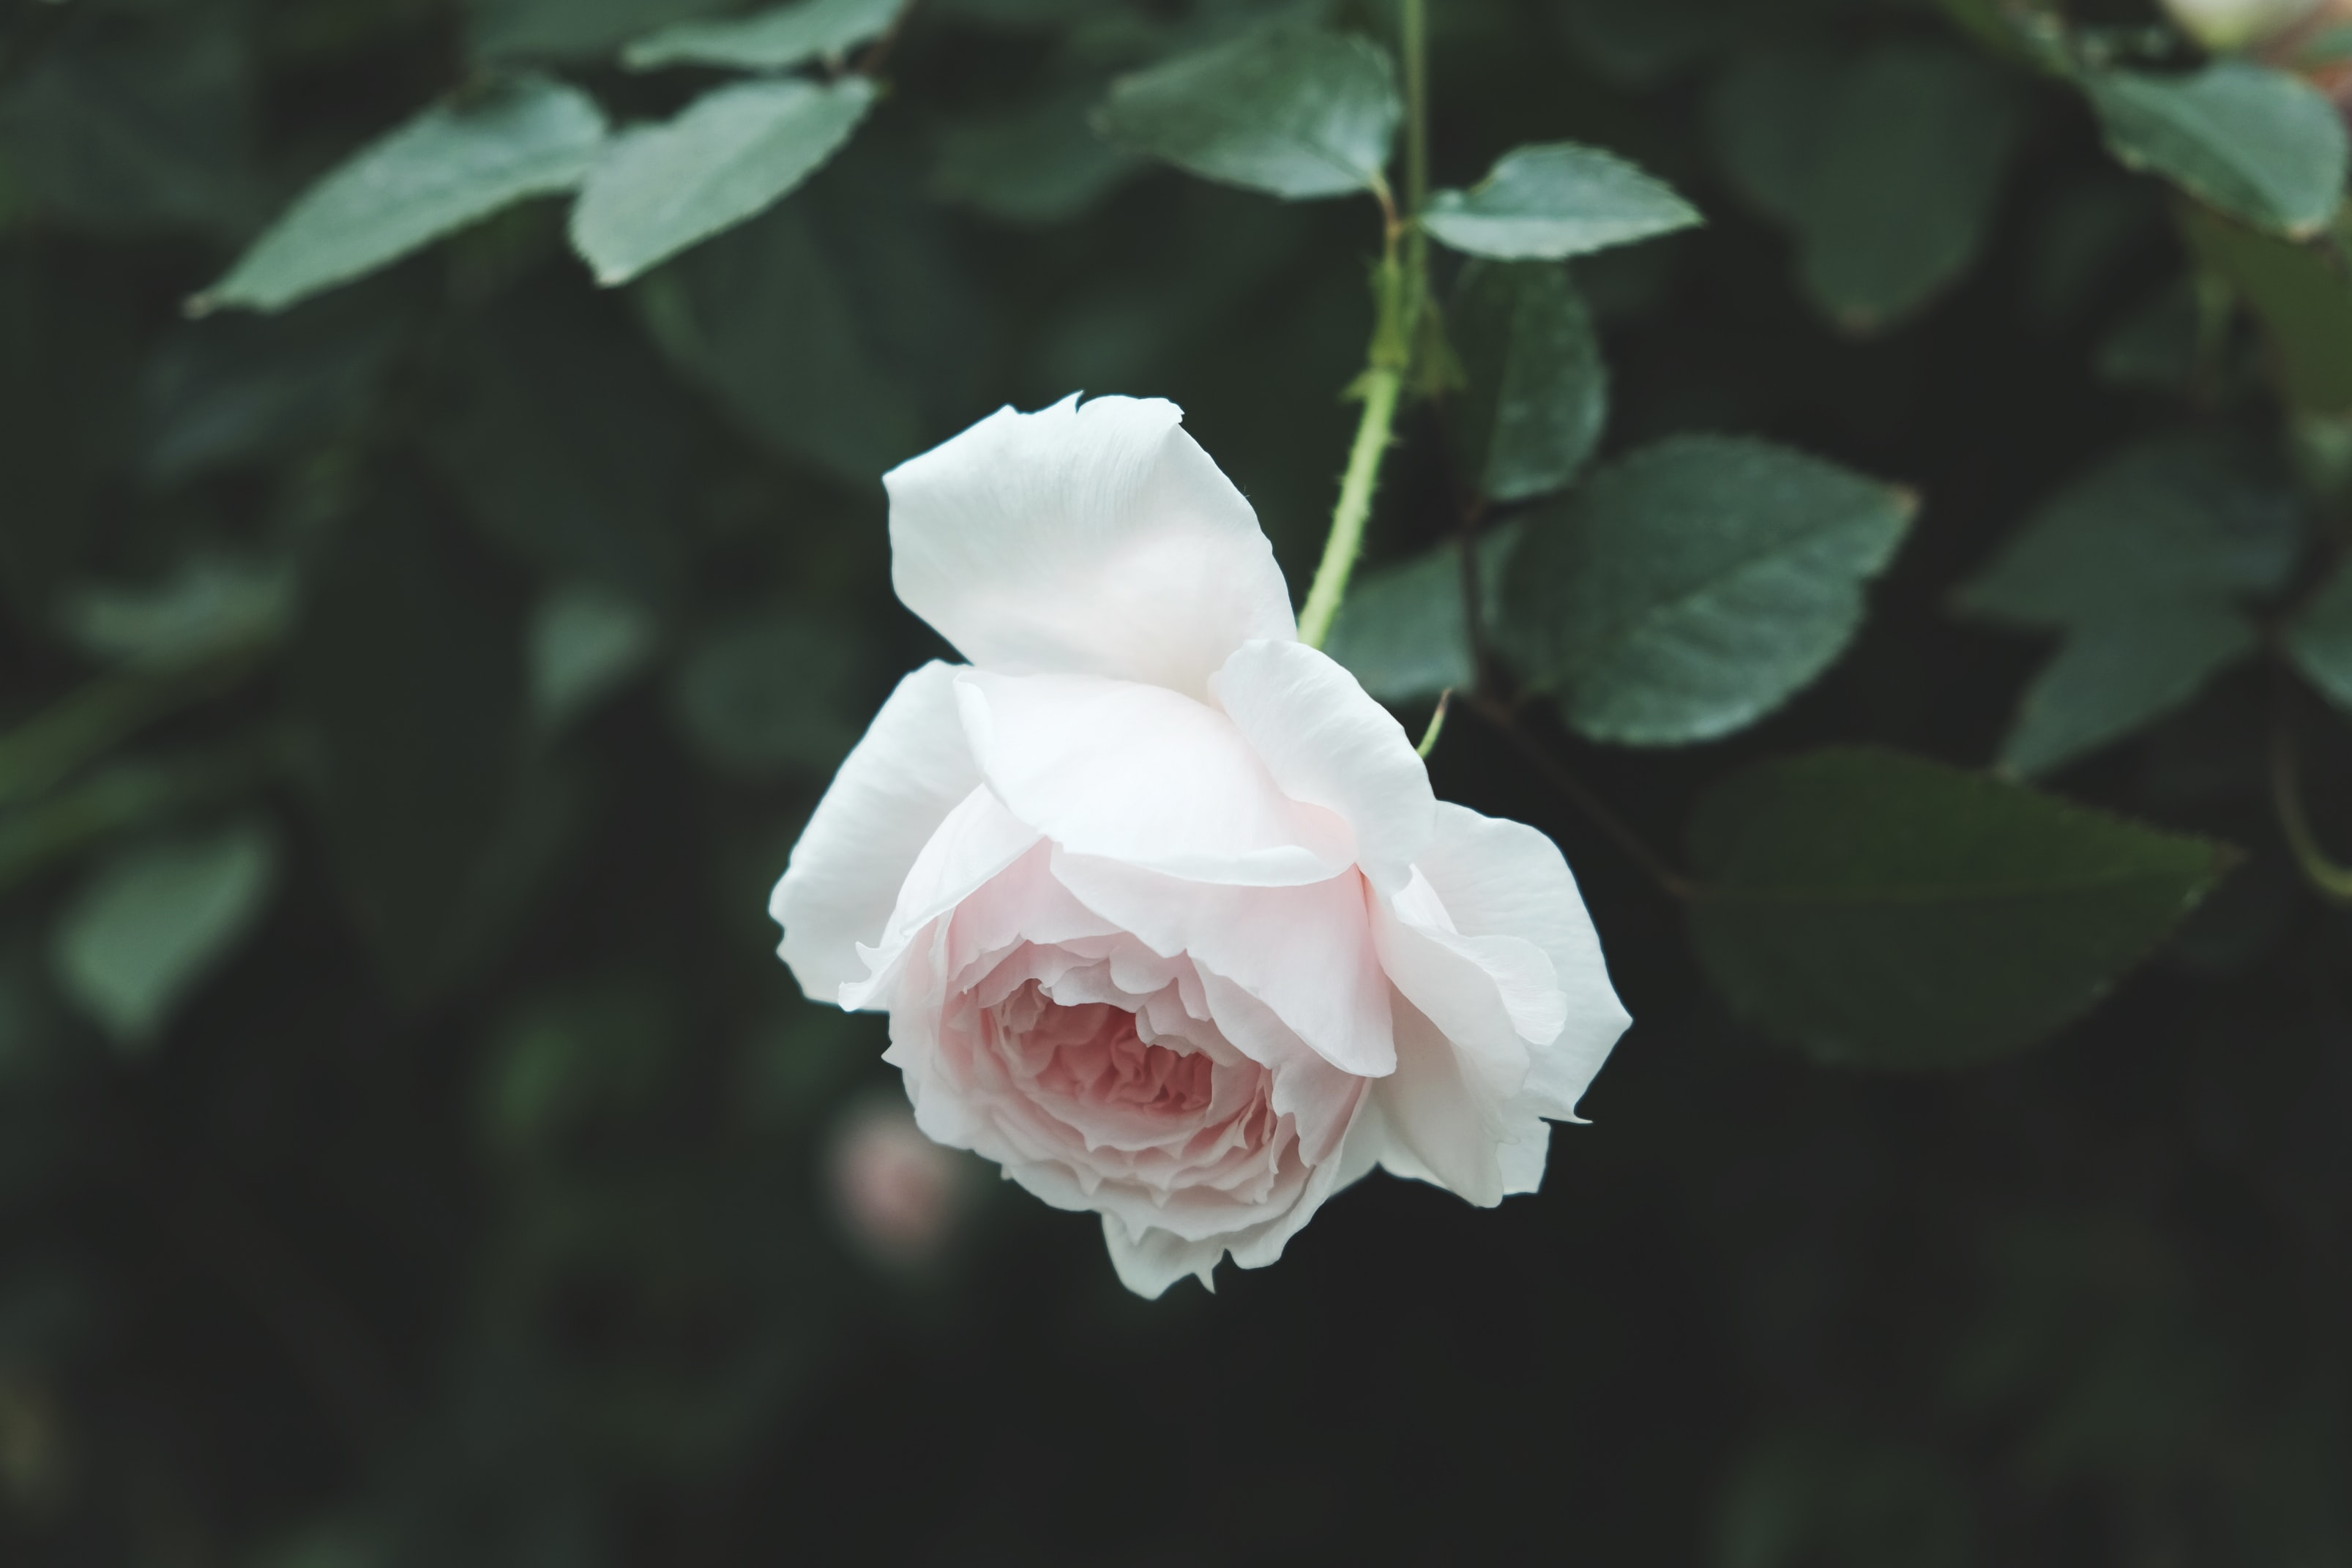 selective focus photography of white rose flower